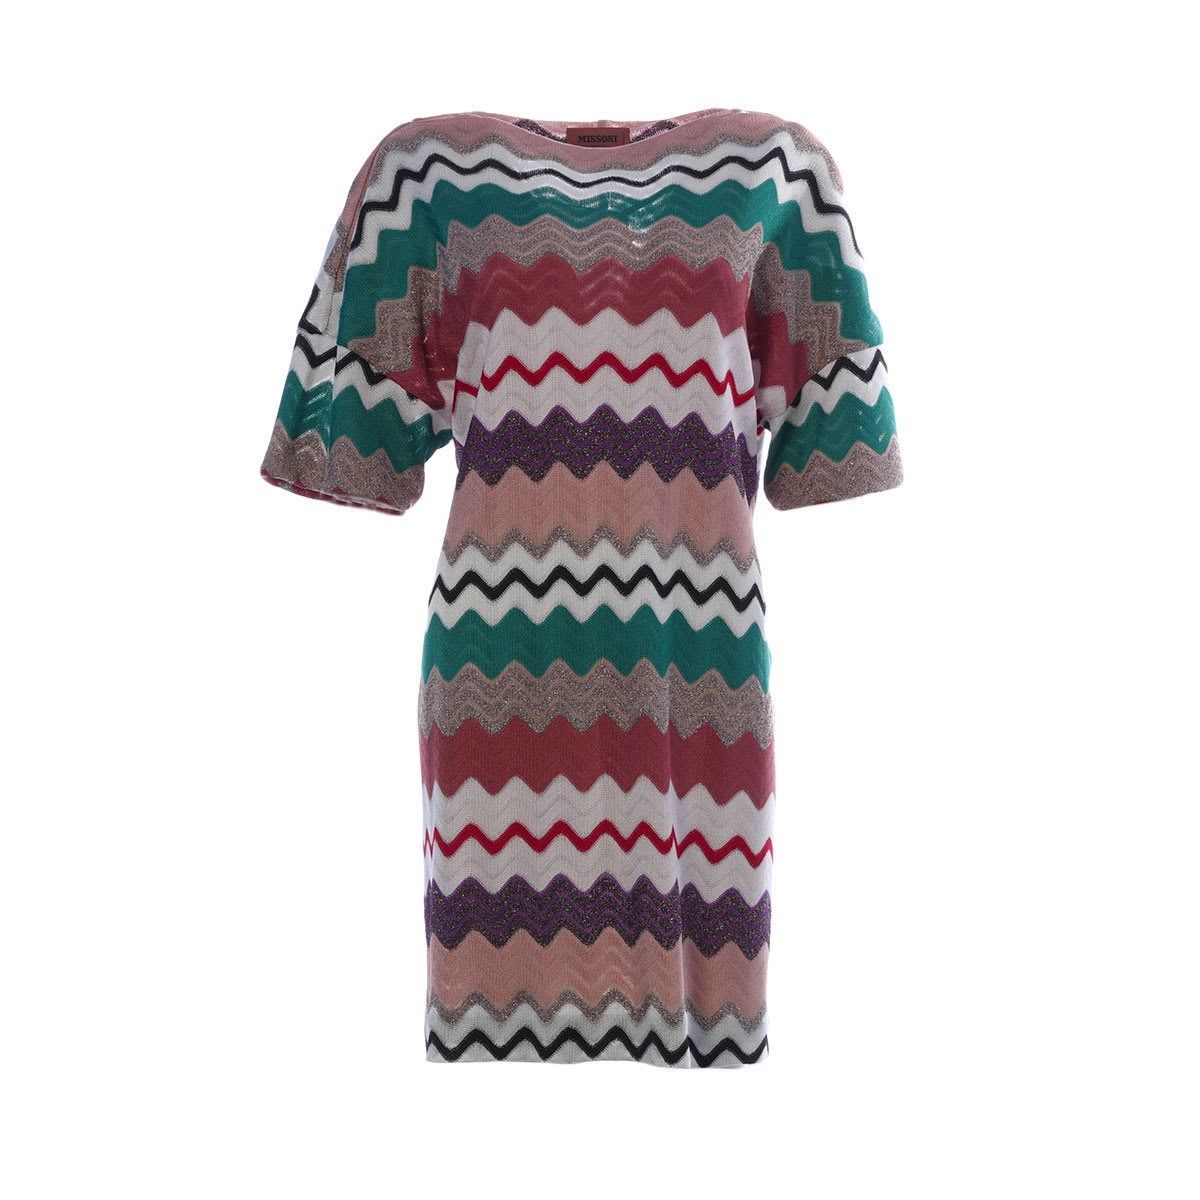 Buy Missoni Zigzag Stripe Patterned Dress online, shop Missoni with free shipping